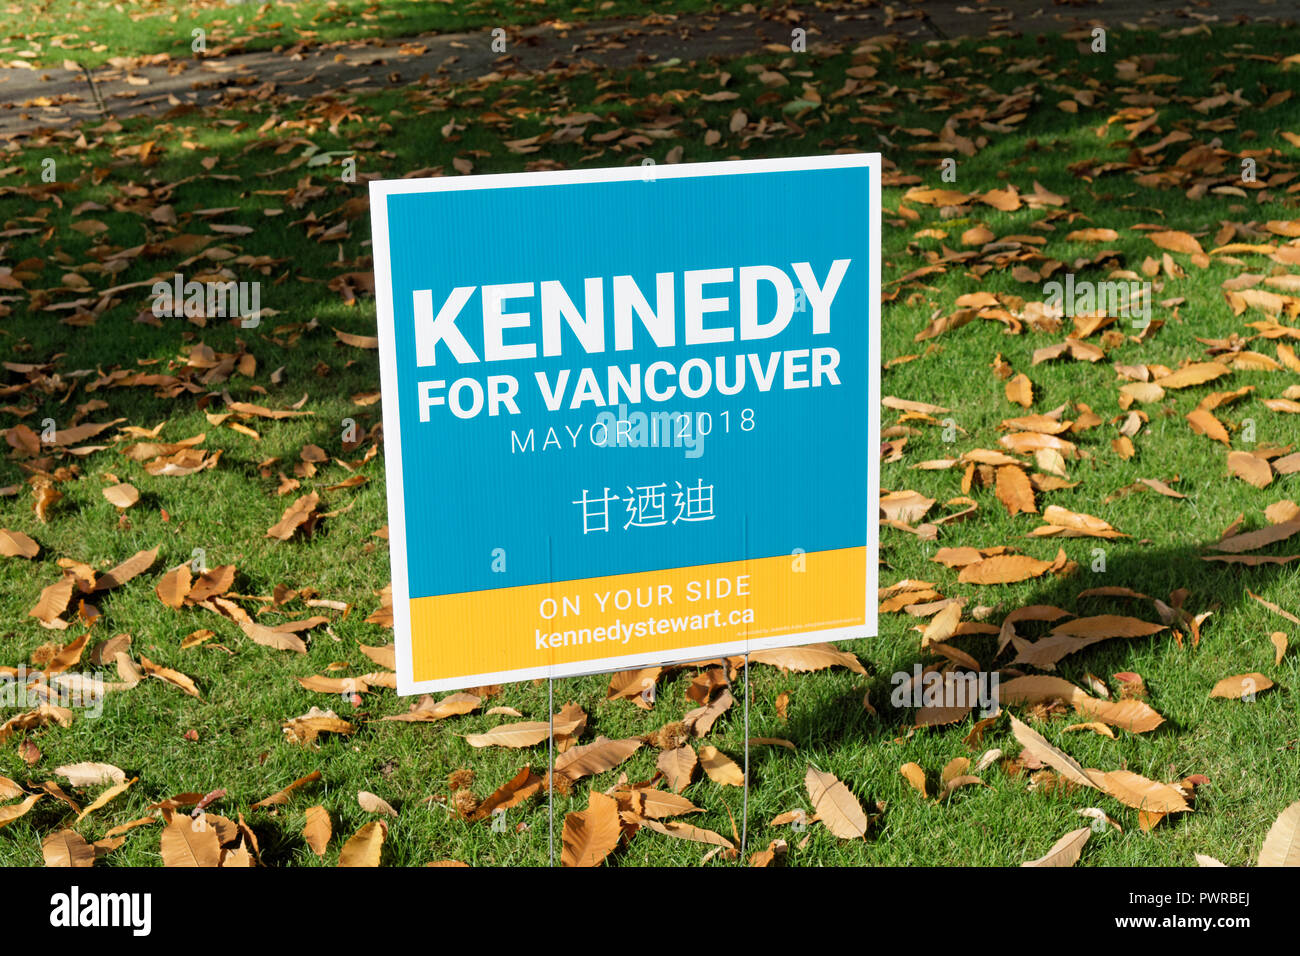 Campaign sign for the 2018 Vancouver Municipal Elections, Vancouver, BC, Canada - Stock Image